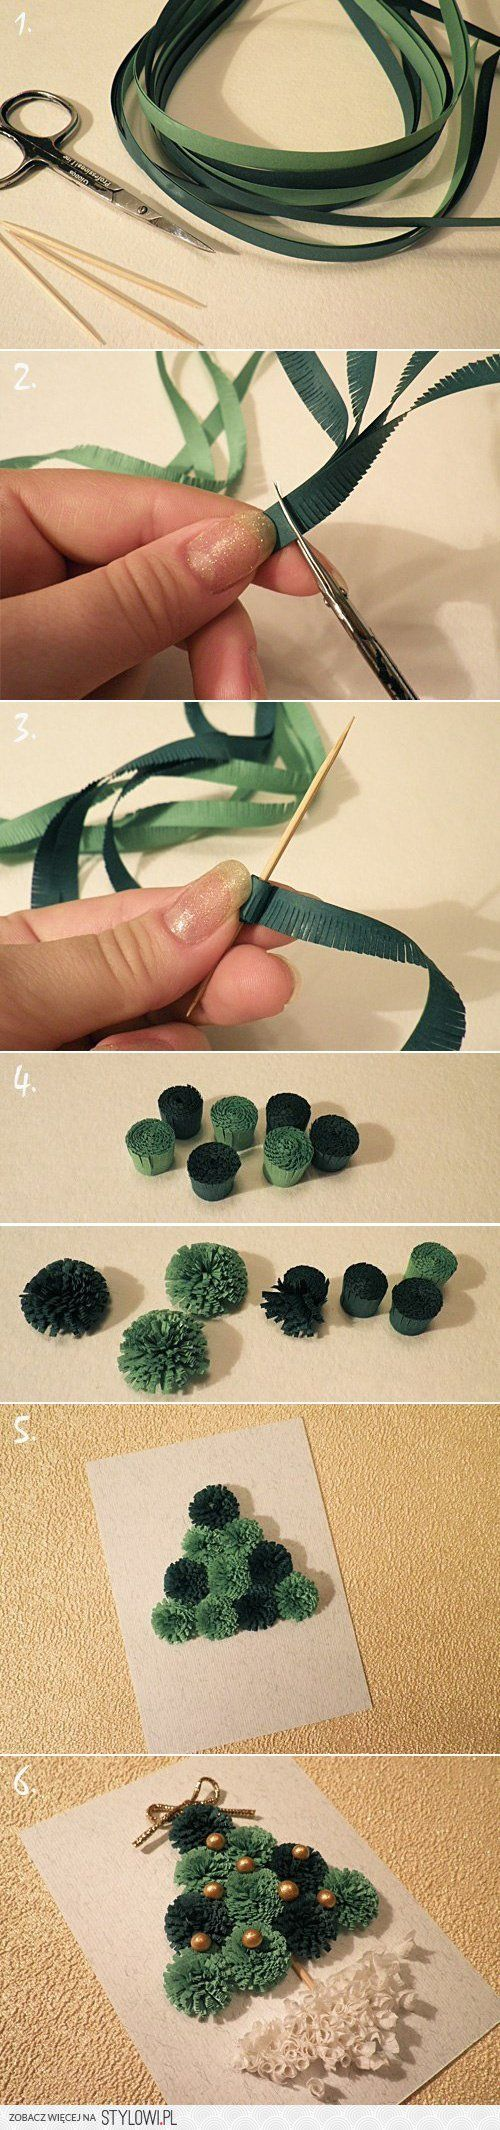 Decor / Greeting Card Idea - Rolled Paper Xmas Tree na Stylowi.pl on We Heart It